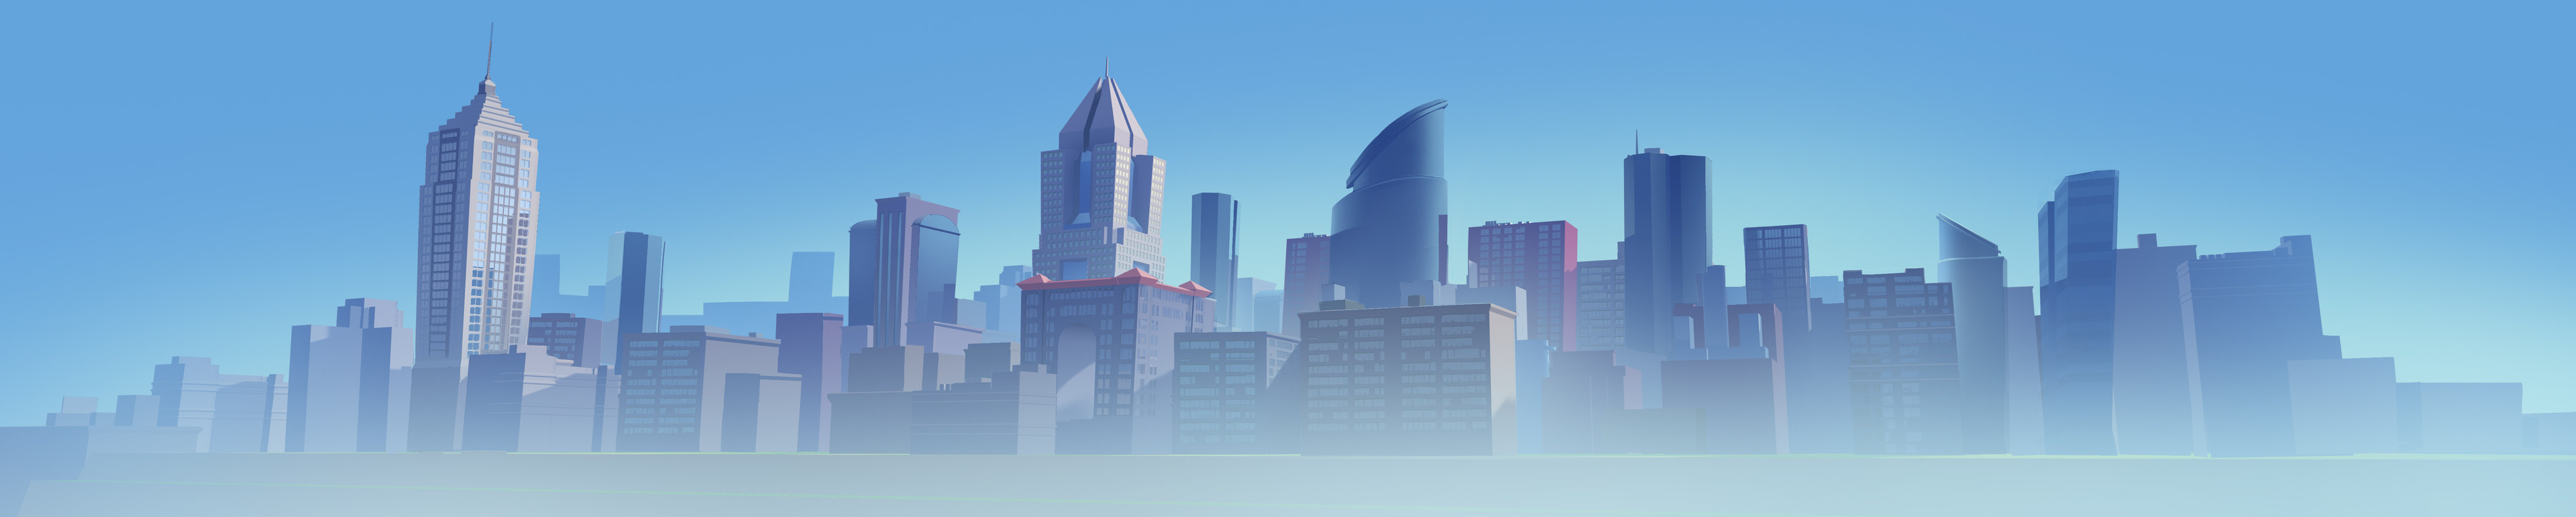 Mattepainting for the buildings in the back